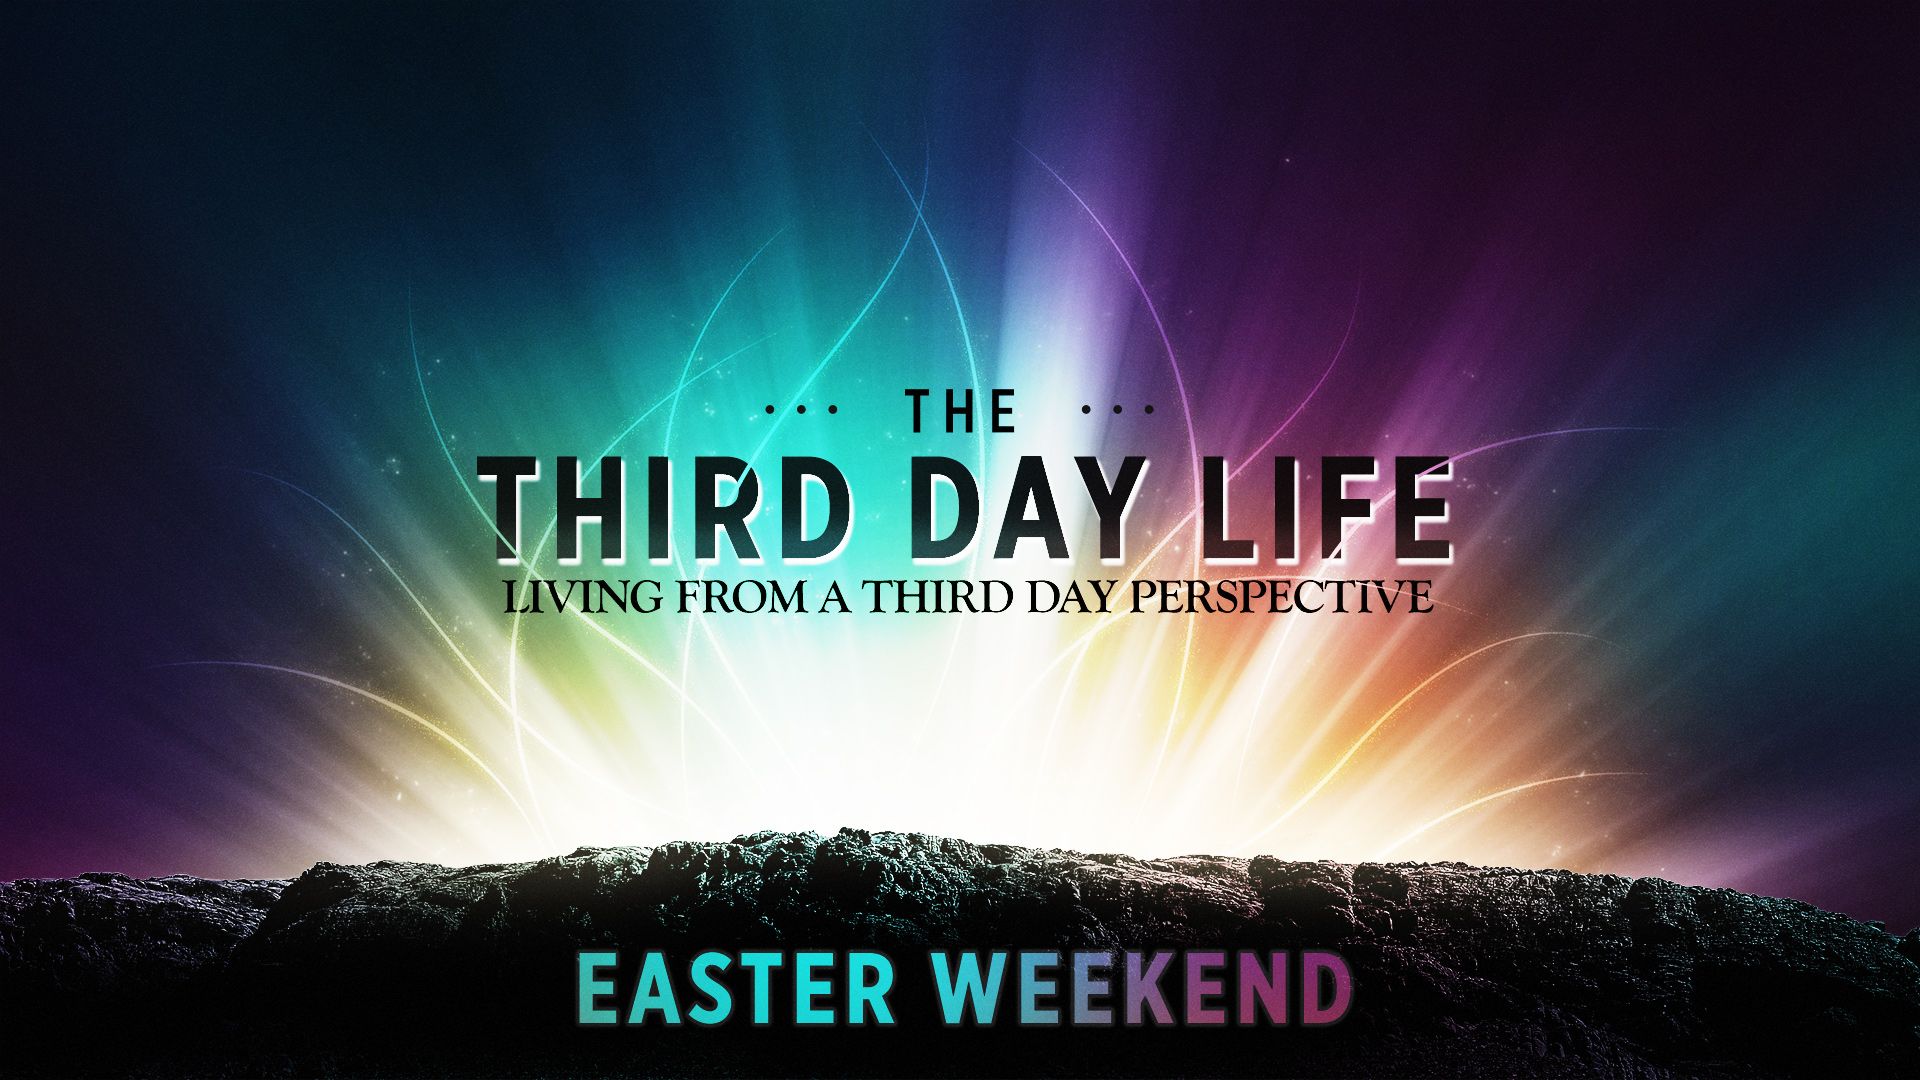 The Third Day Life